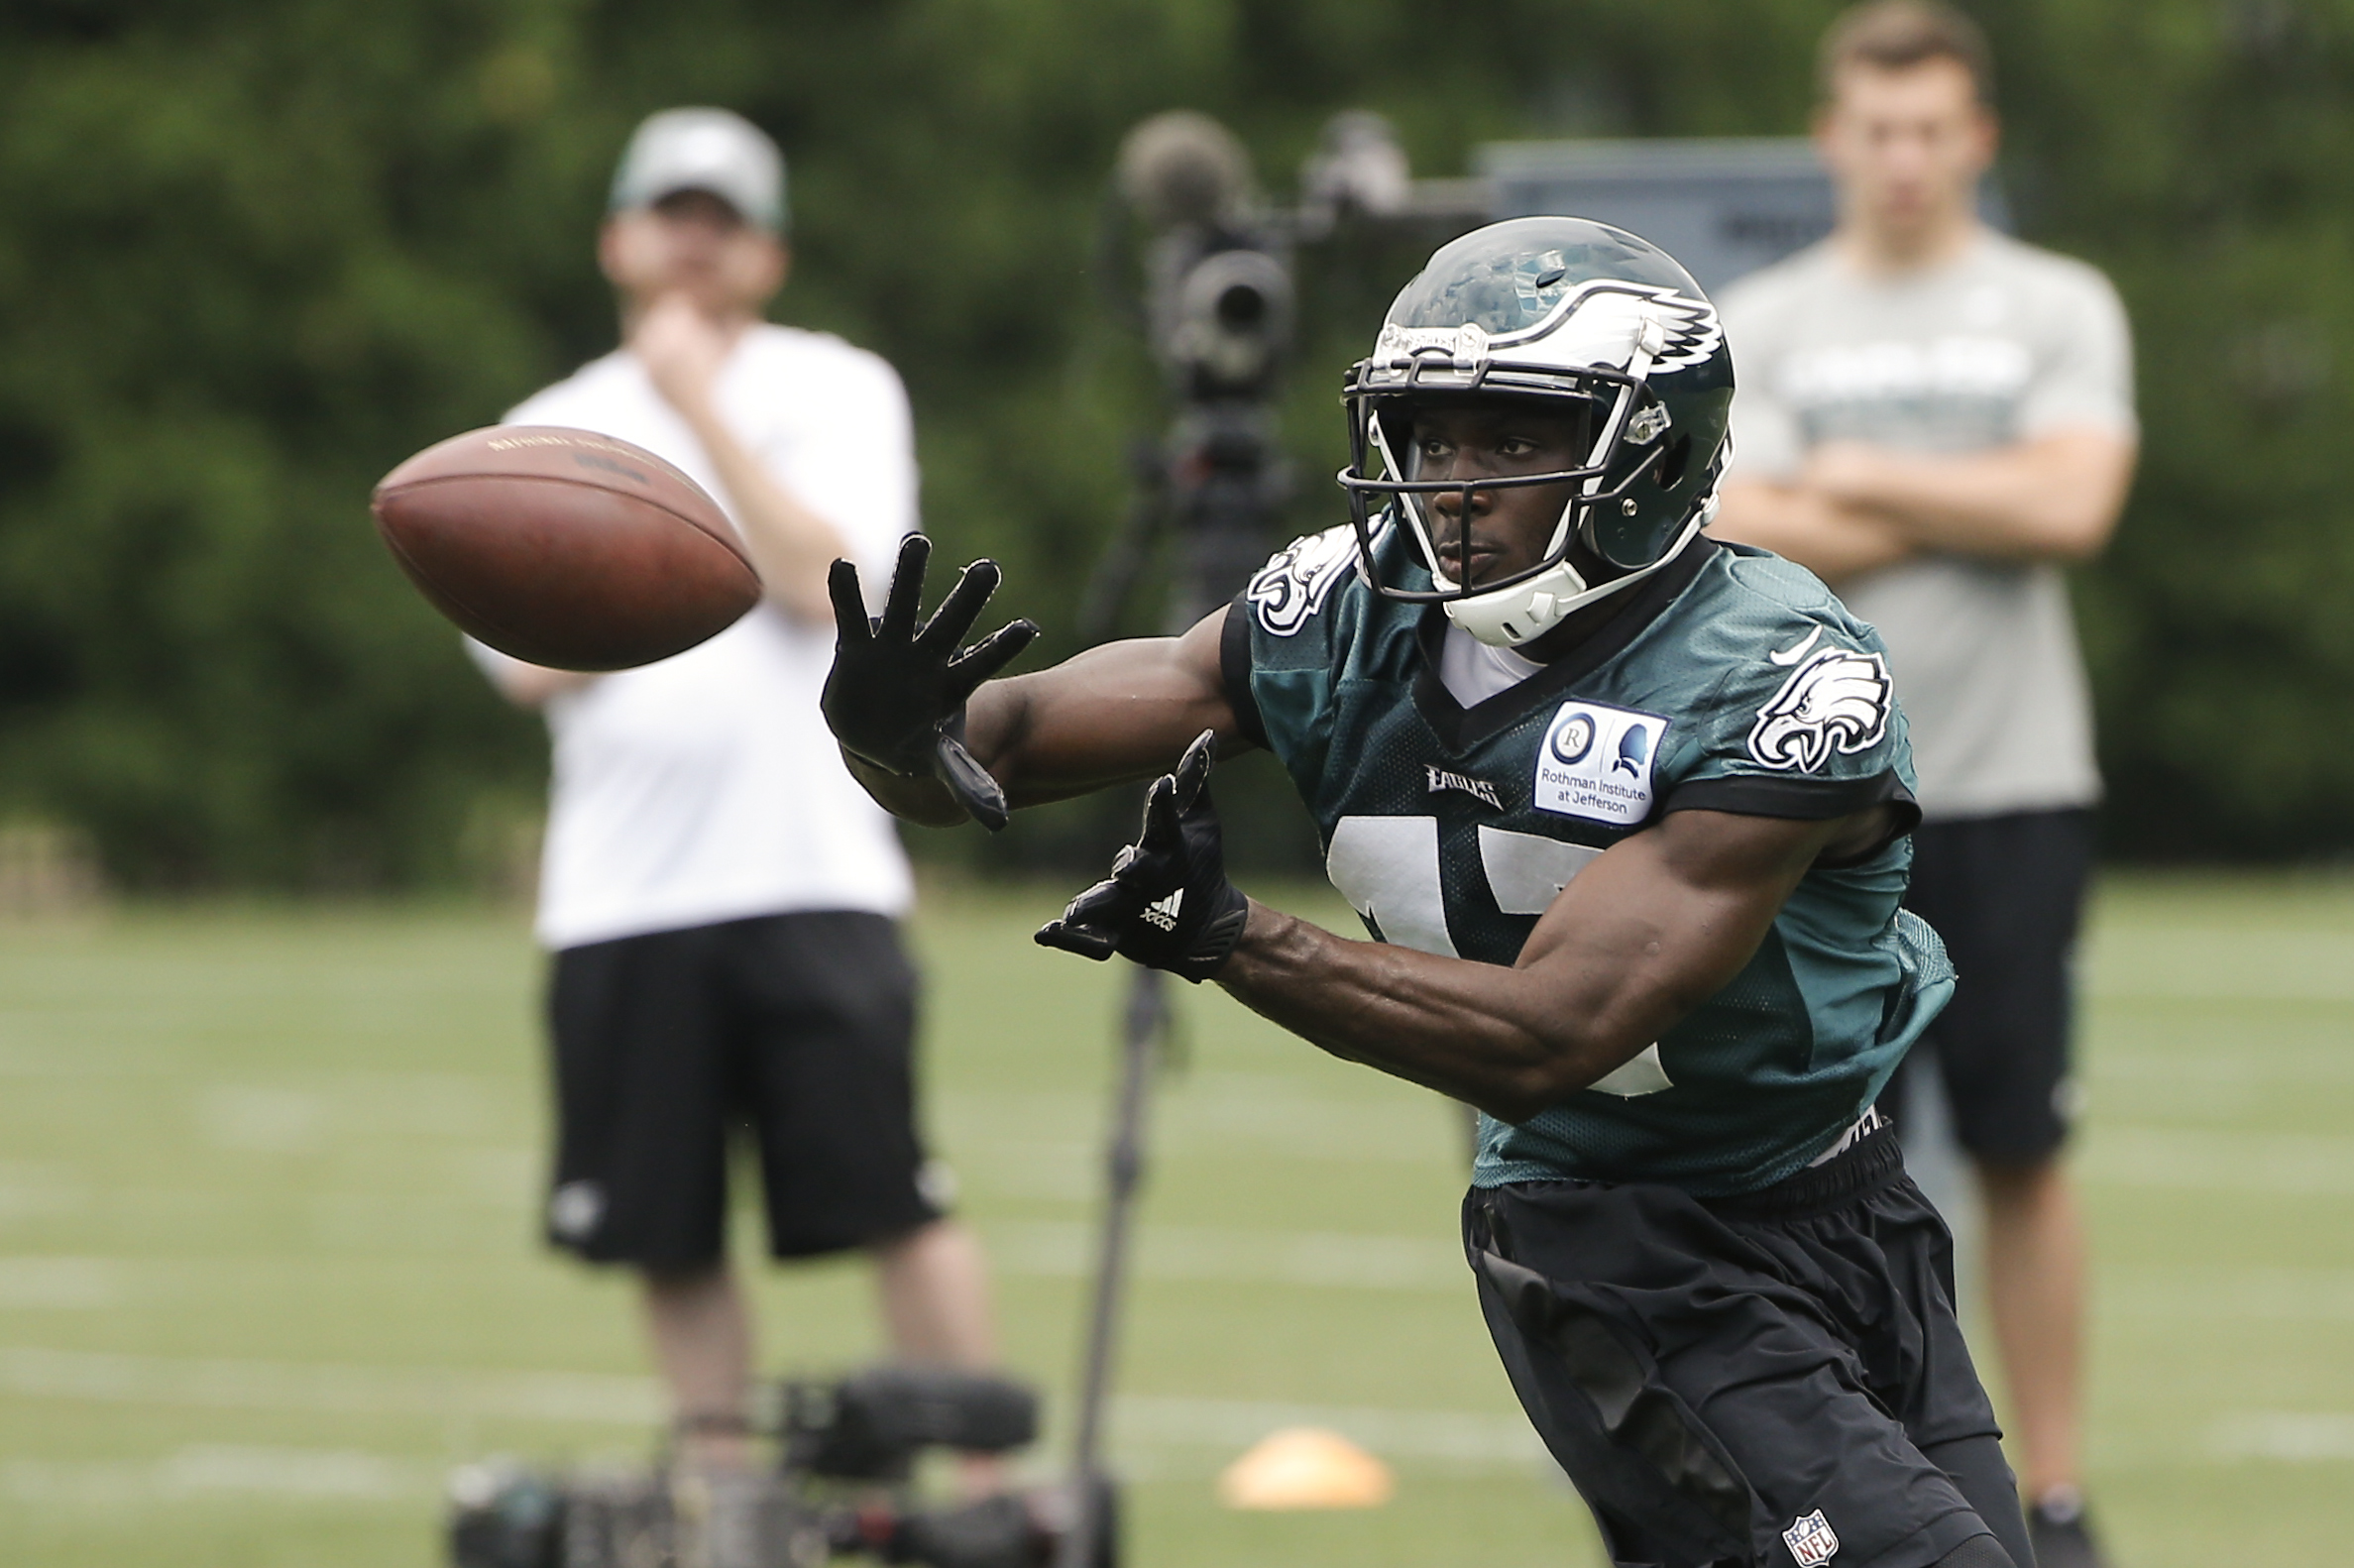 Philadelphia Eagles' Nelson Agholor catches a pass during practice at the team's NFL football training facility in Philadelphia, Tuesday, June 7, 2016. (AP Photo/Matt Rourke)